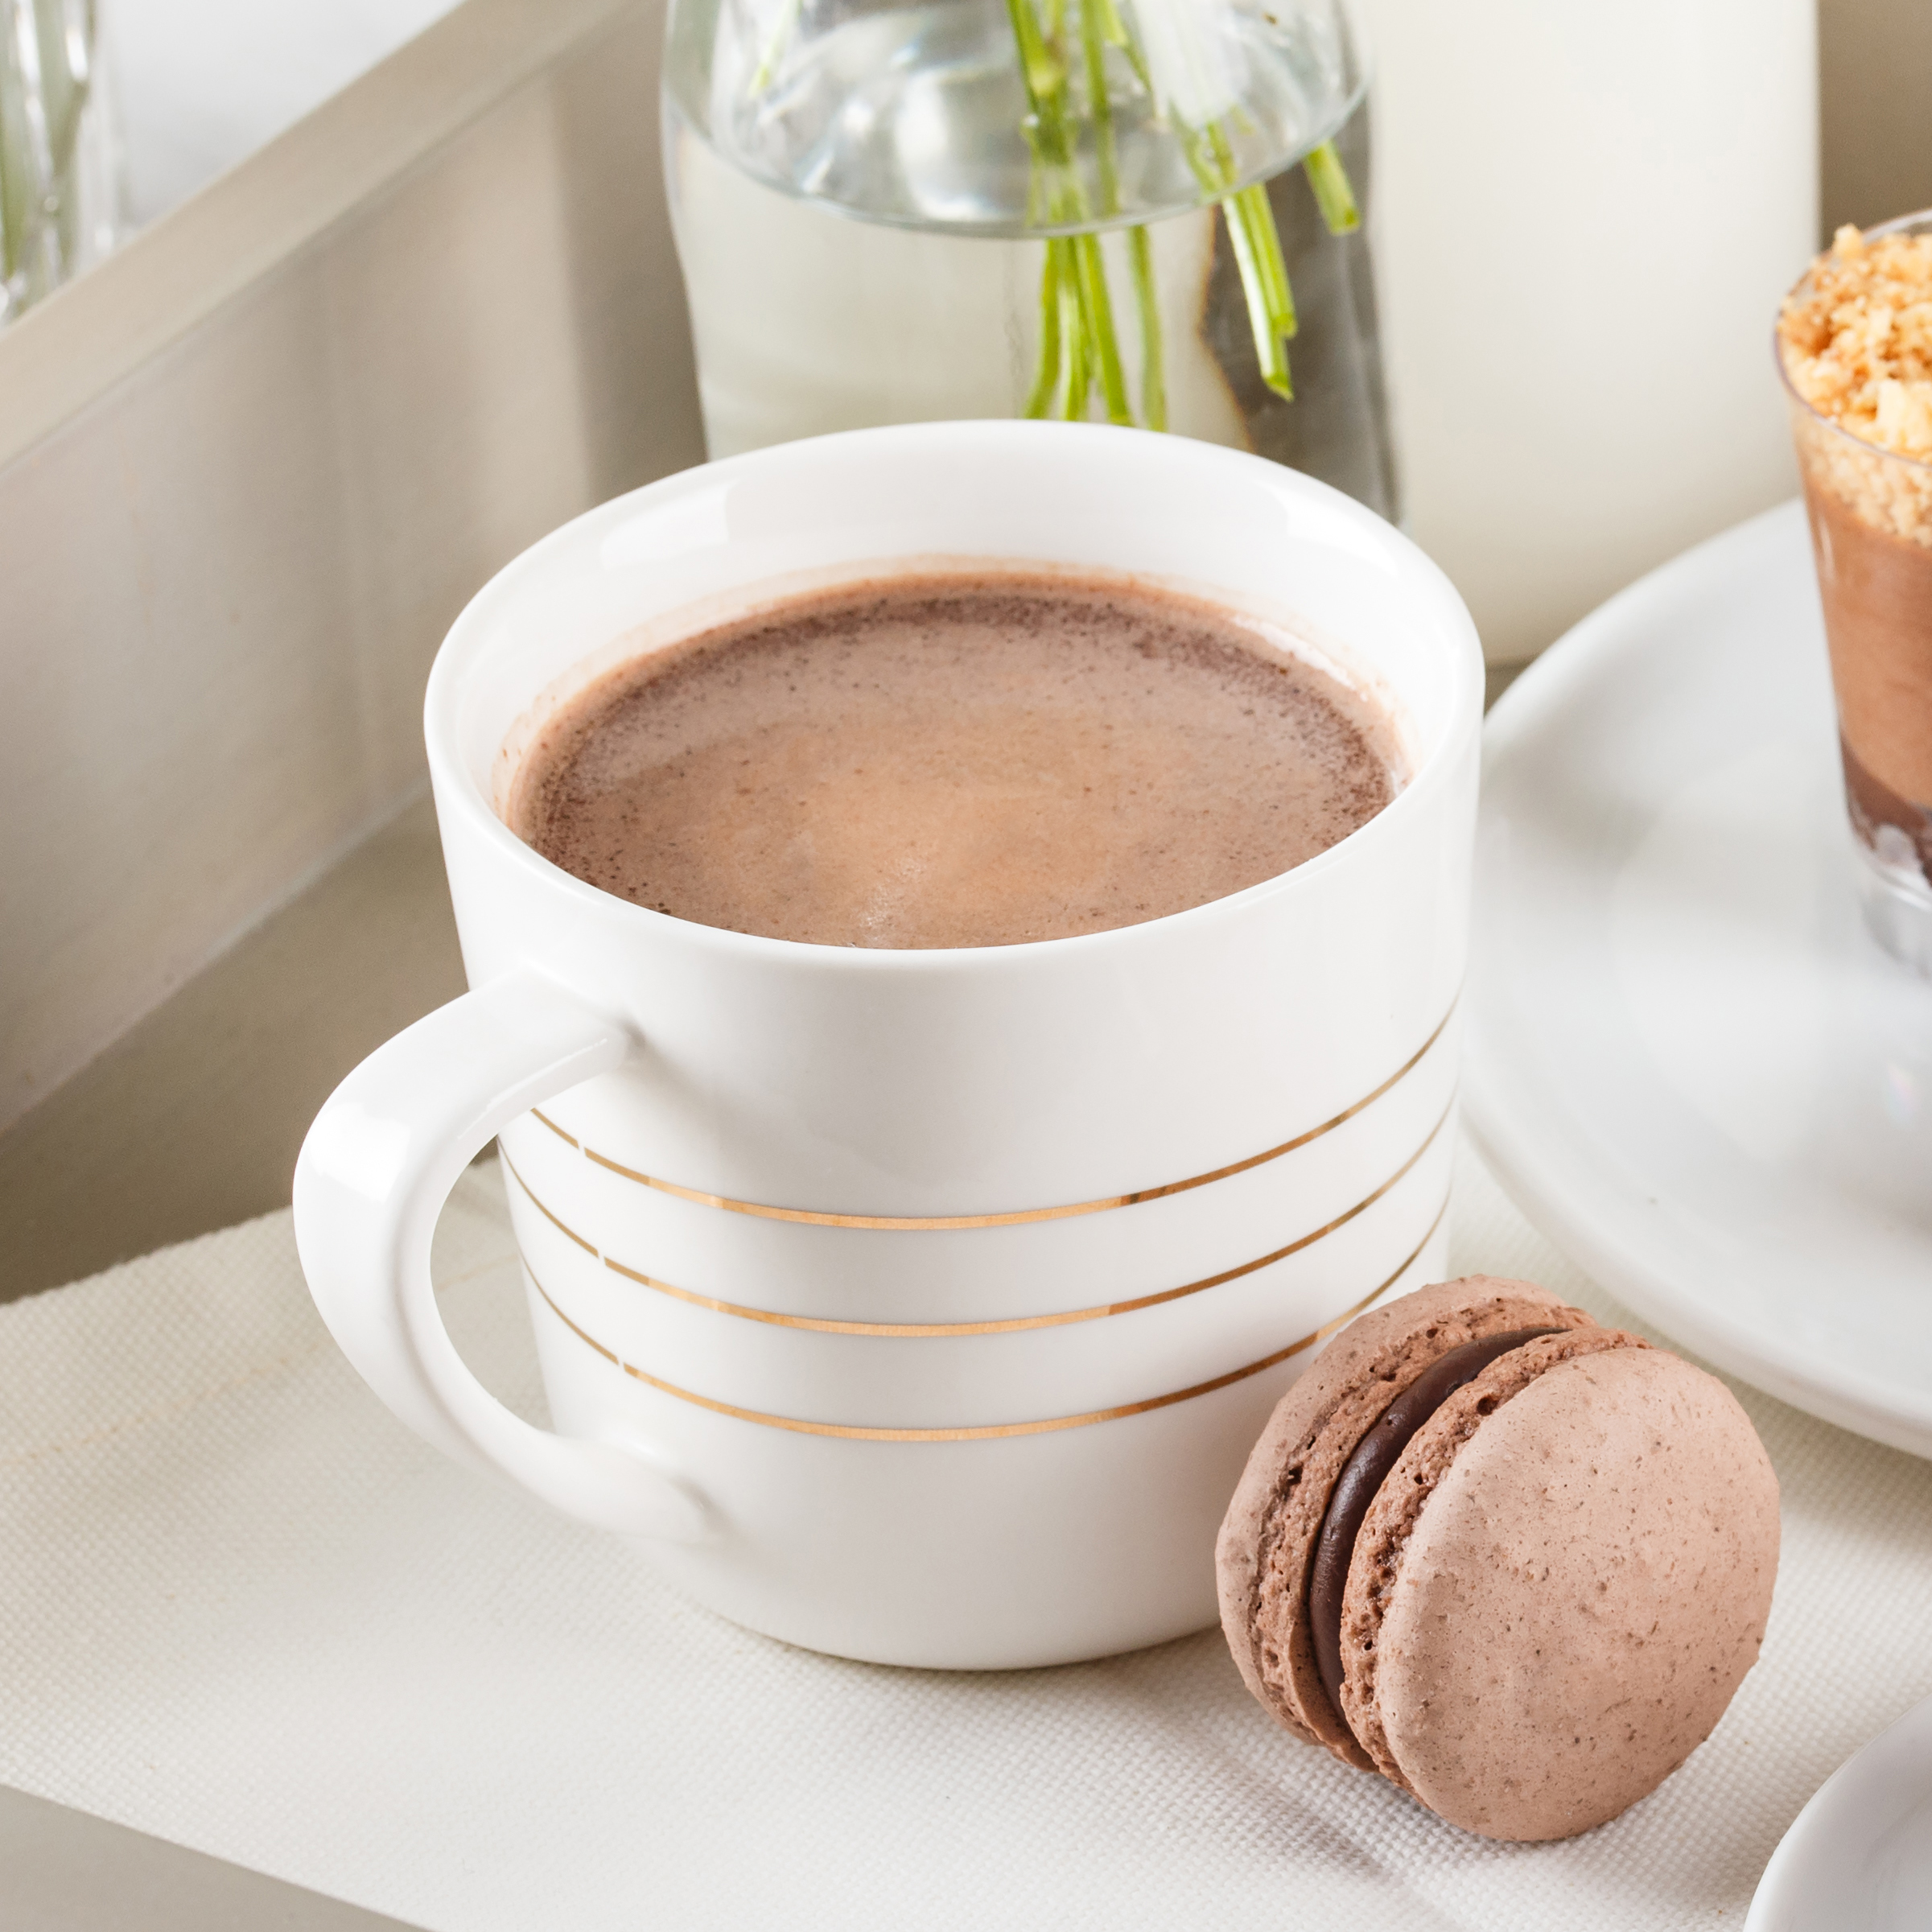 5 Tips to Level Up Your Hot Chocolate While Stay at Home image